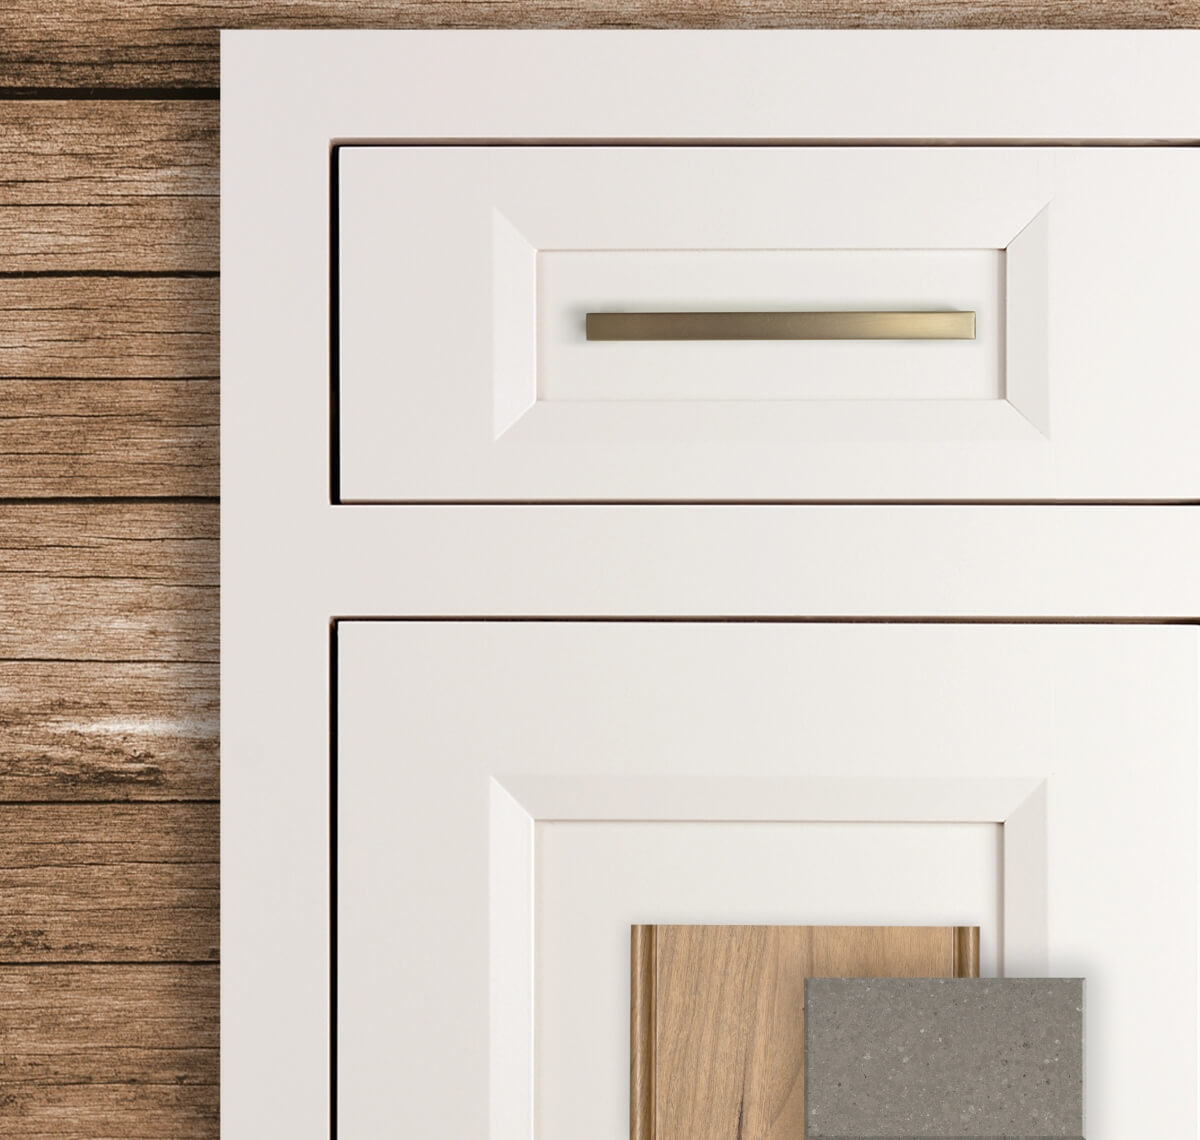 Dura Supreme Cabinetry's Lauren-Inset door style in